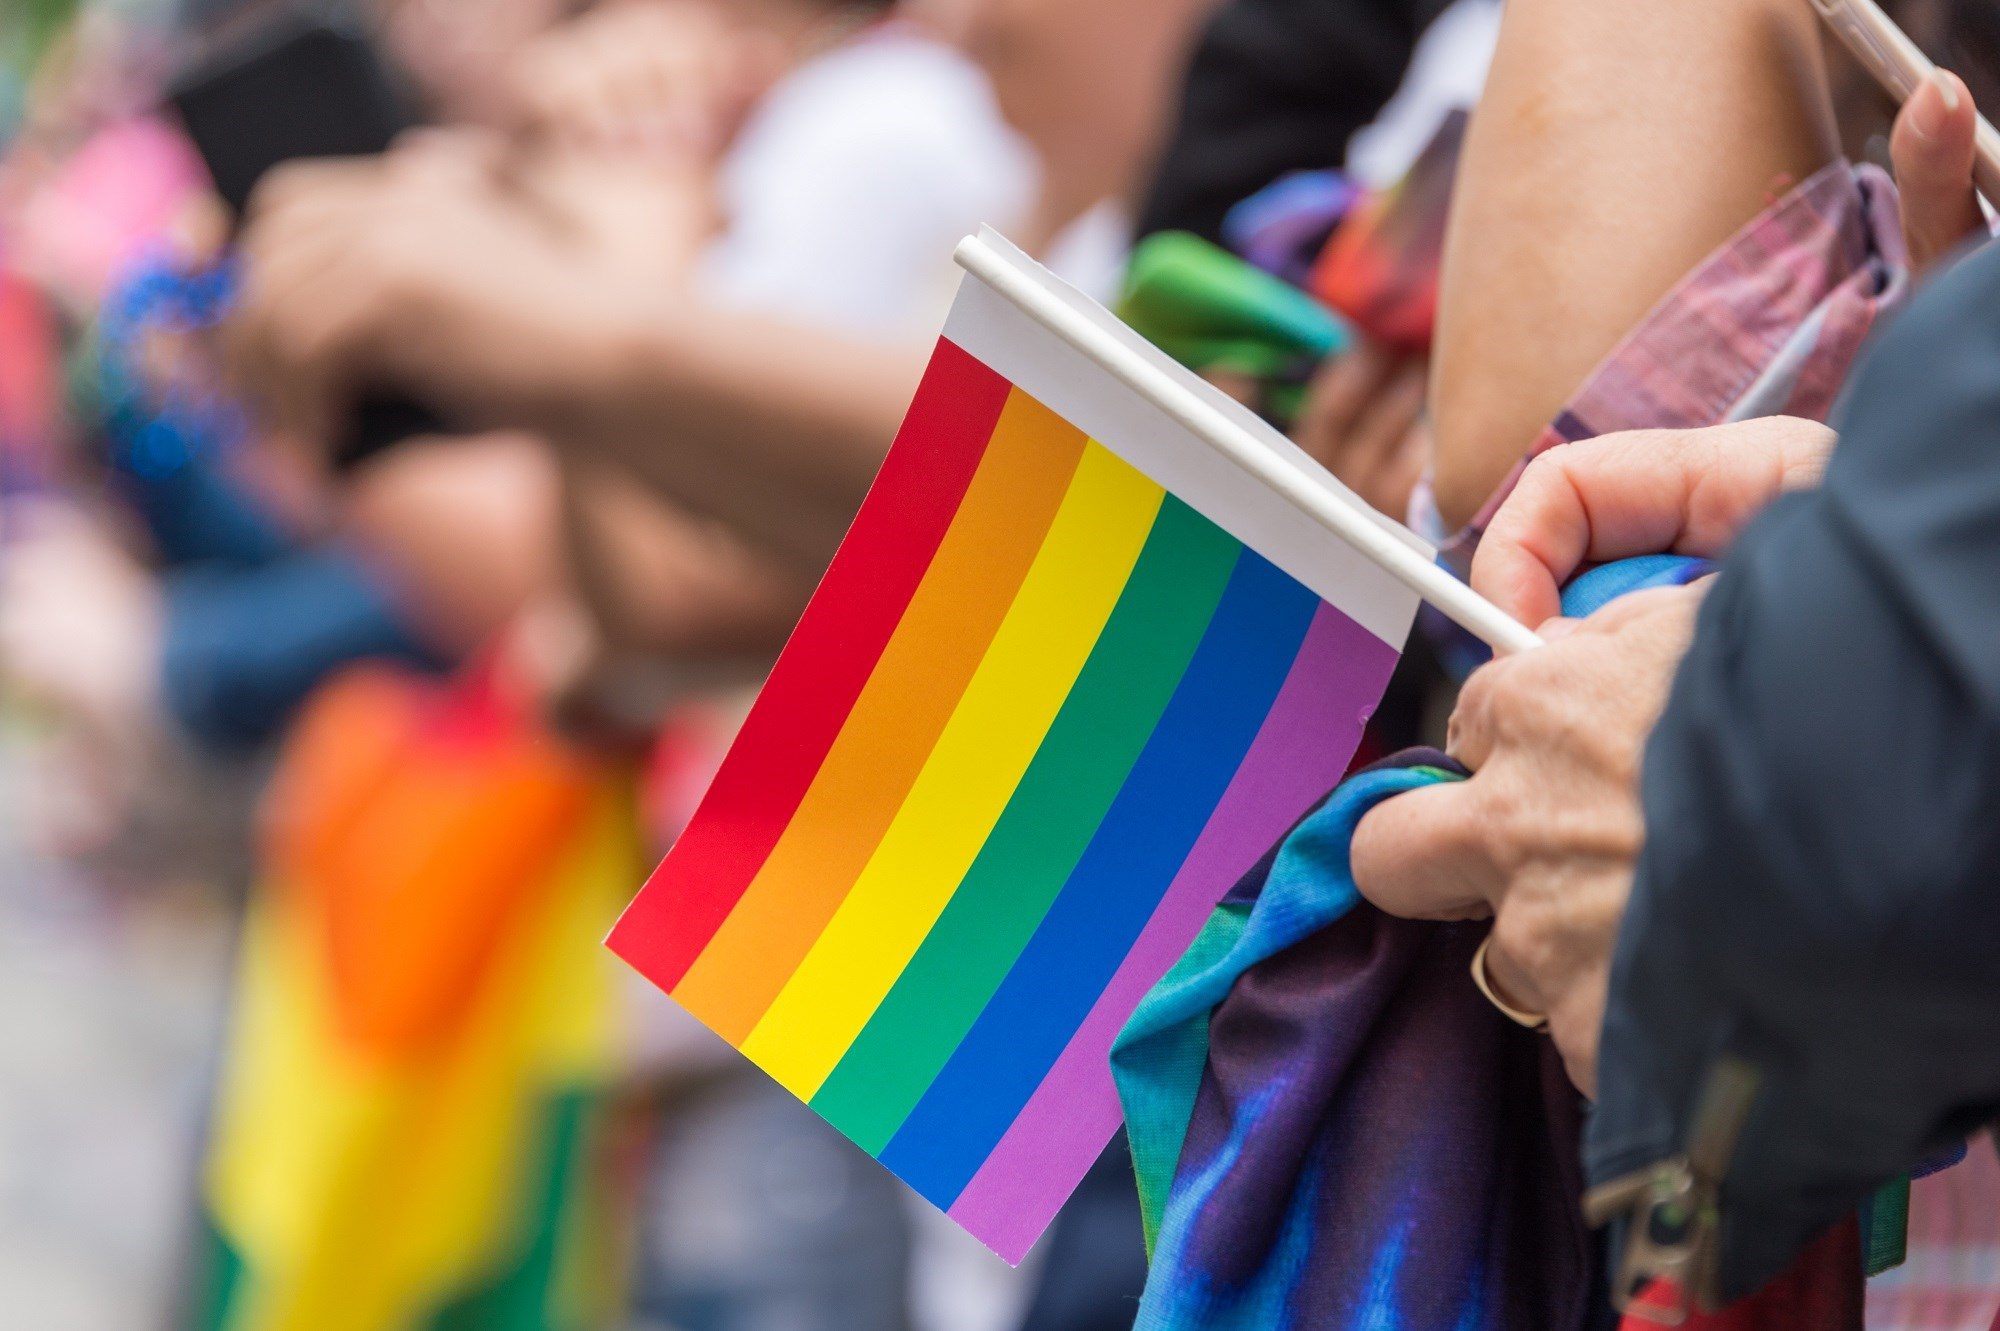 Suicide Attempt Risk Among LGB Populations Higher Than Previously Estimated